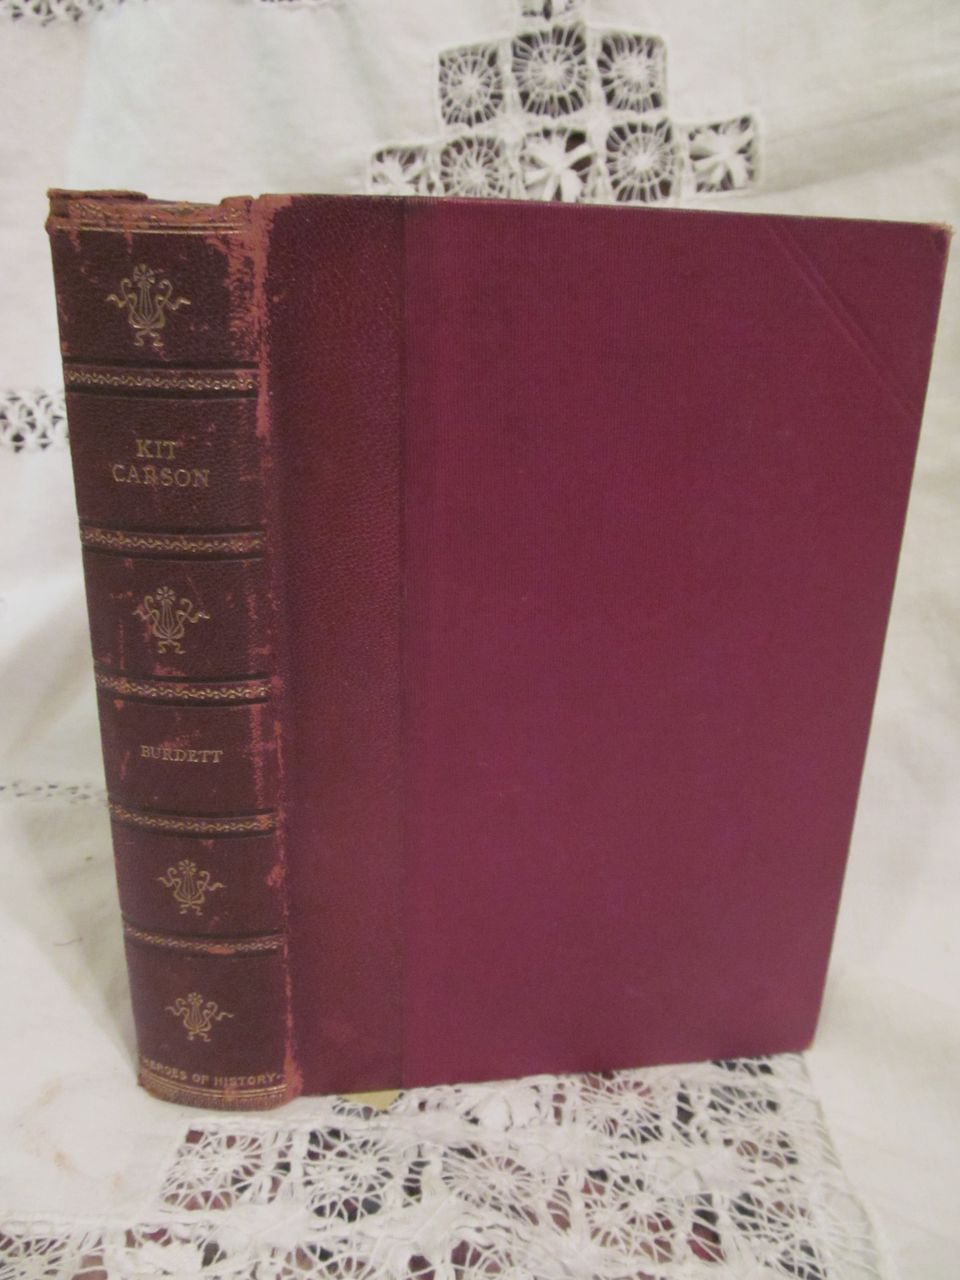 1902 Kit Carson, The Great Western Hunter & Guide by Charles Burdett, G mercer Adam, Perkins Book Company, E A Brainerd